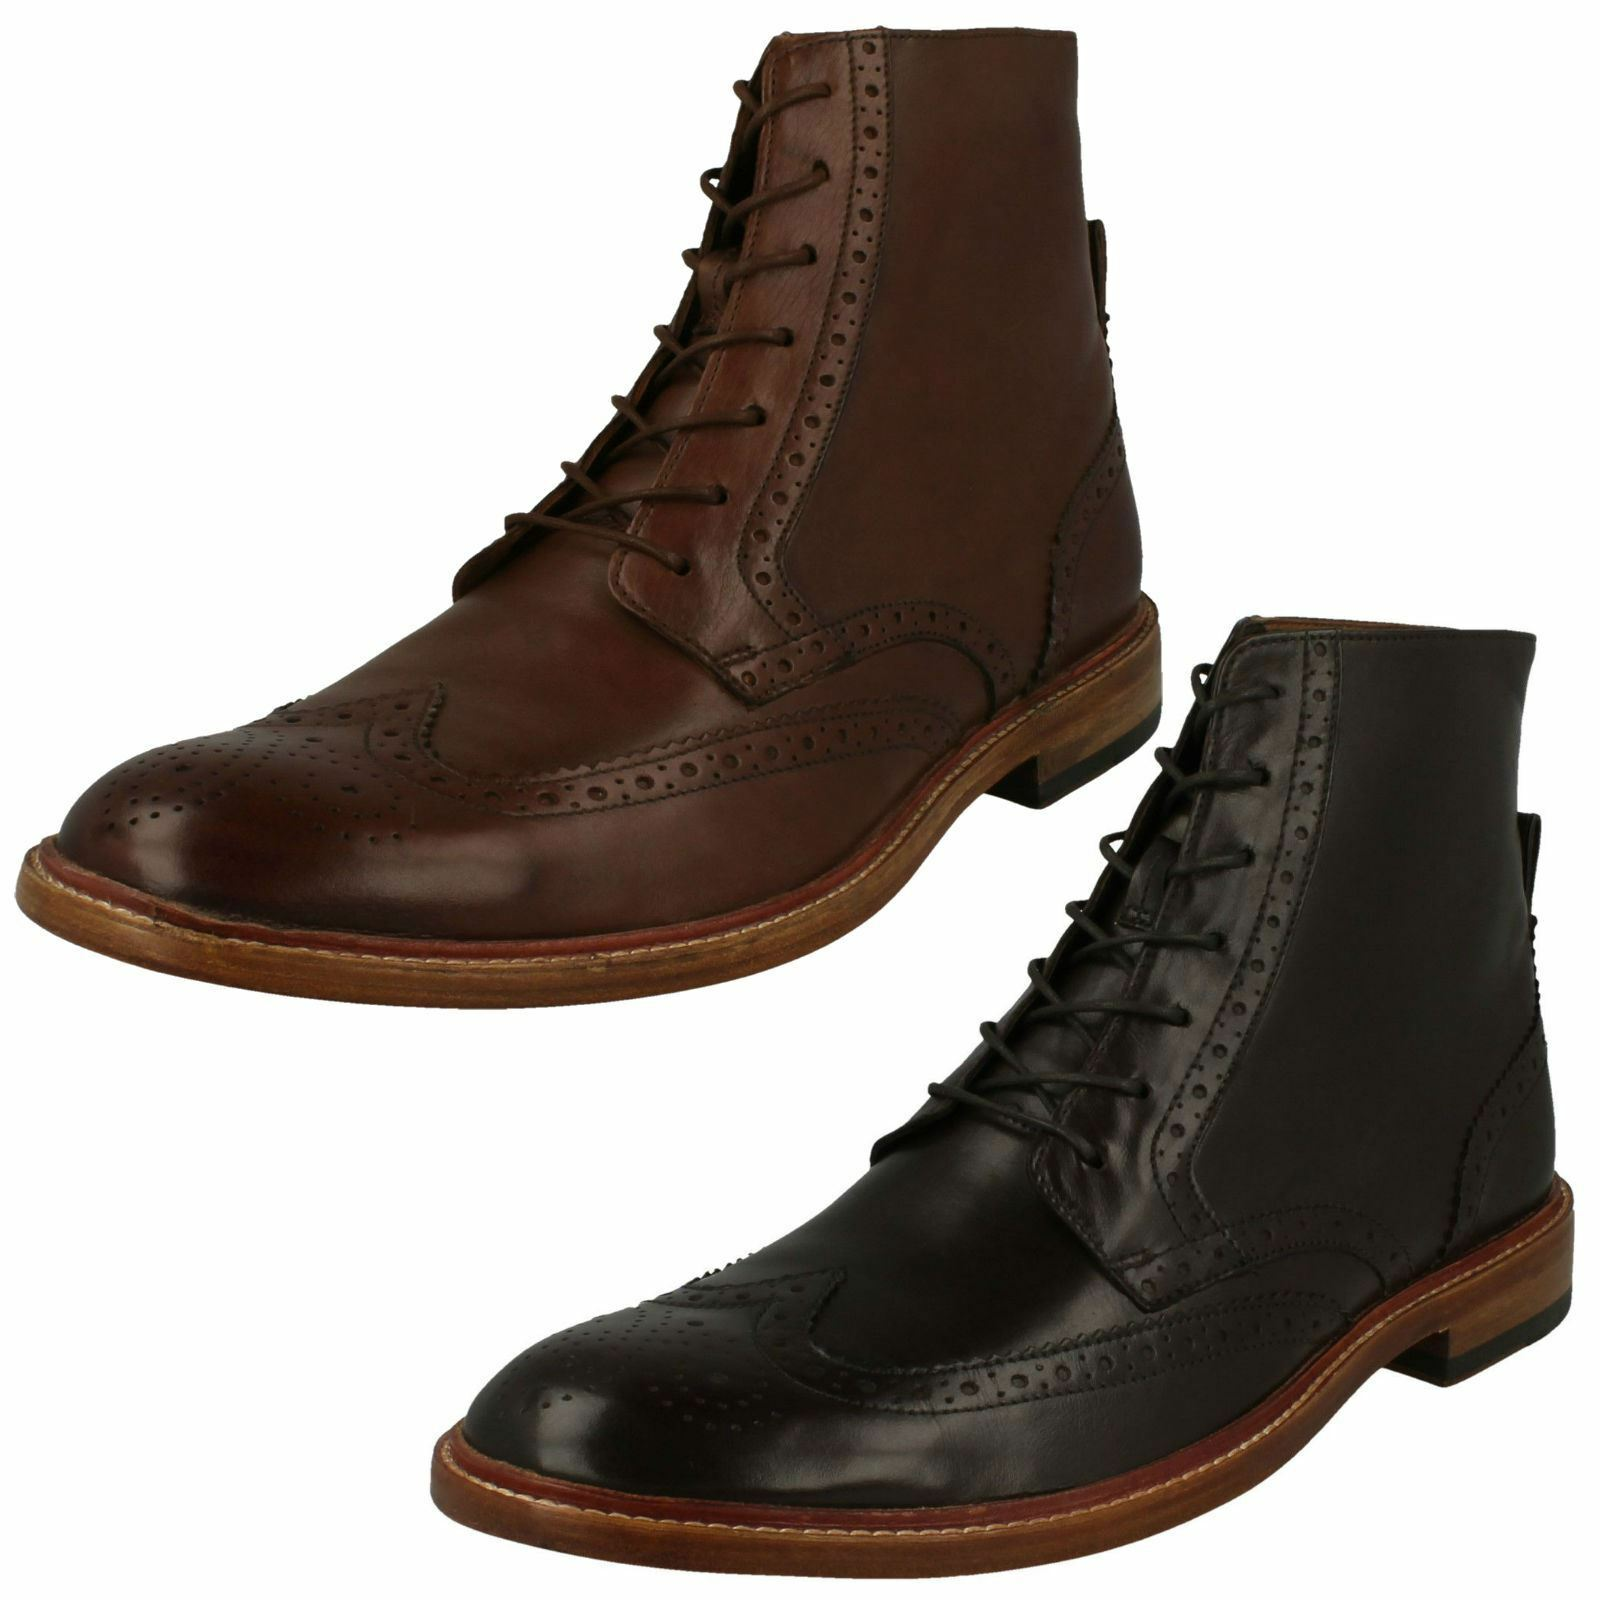 Mens Clarks Stylish Lace-Up Brogue Boots James Hi